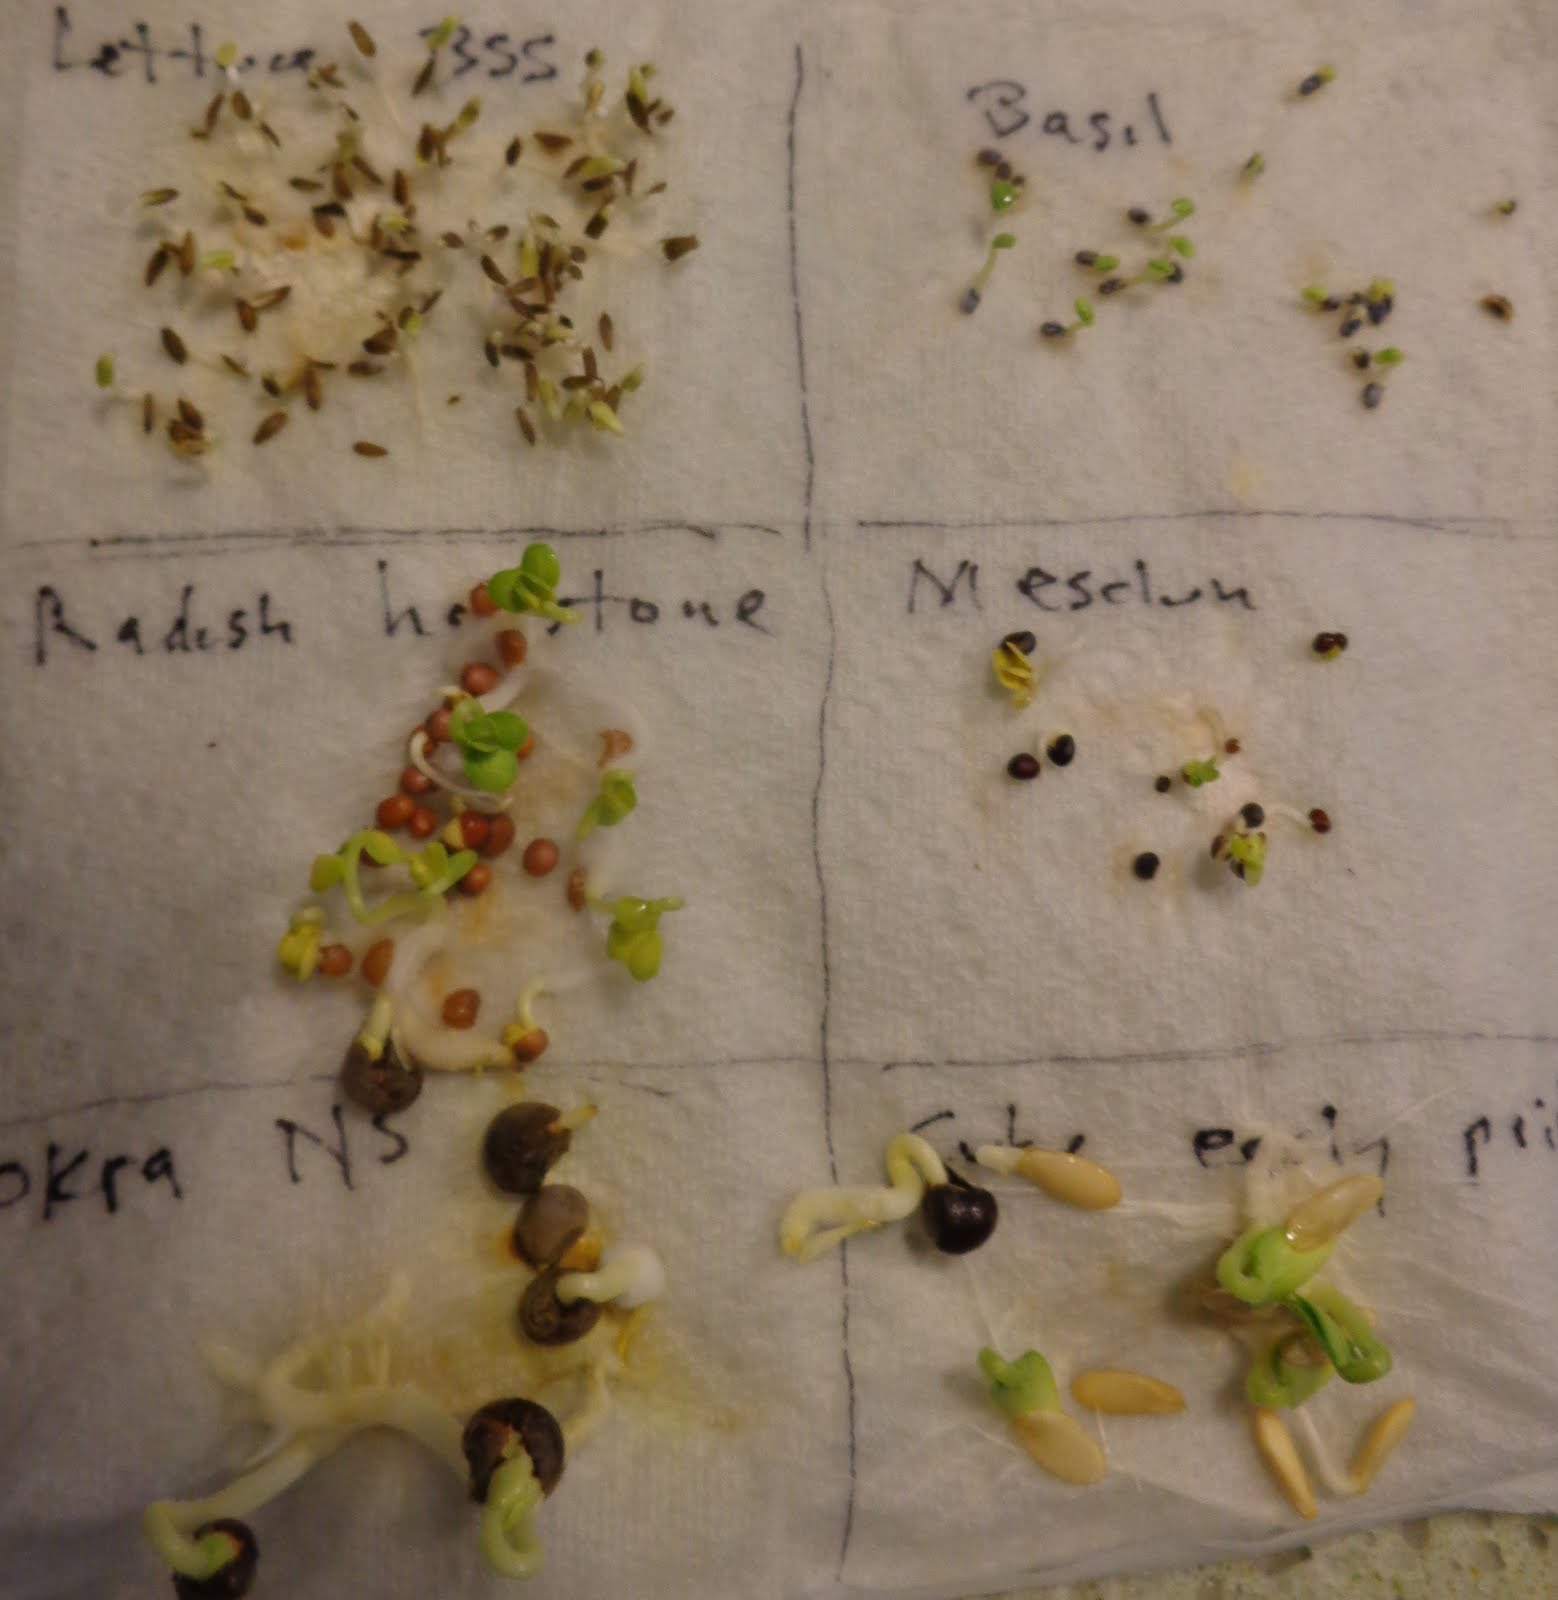 seed germination essay Seed germination lab report - get a 100% authentic, plagiarism-free paper you could only dream about in our custom writing help perfectly written and hq academic essays.